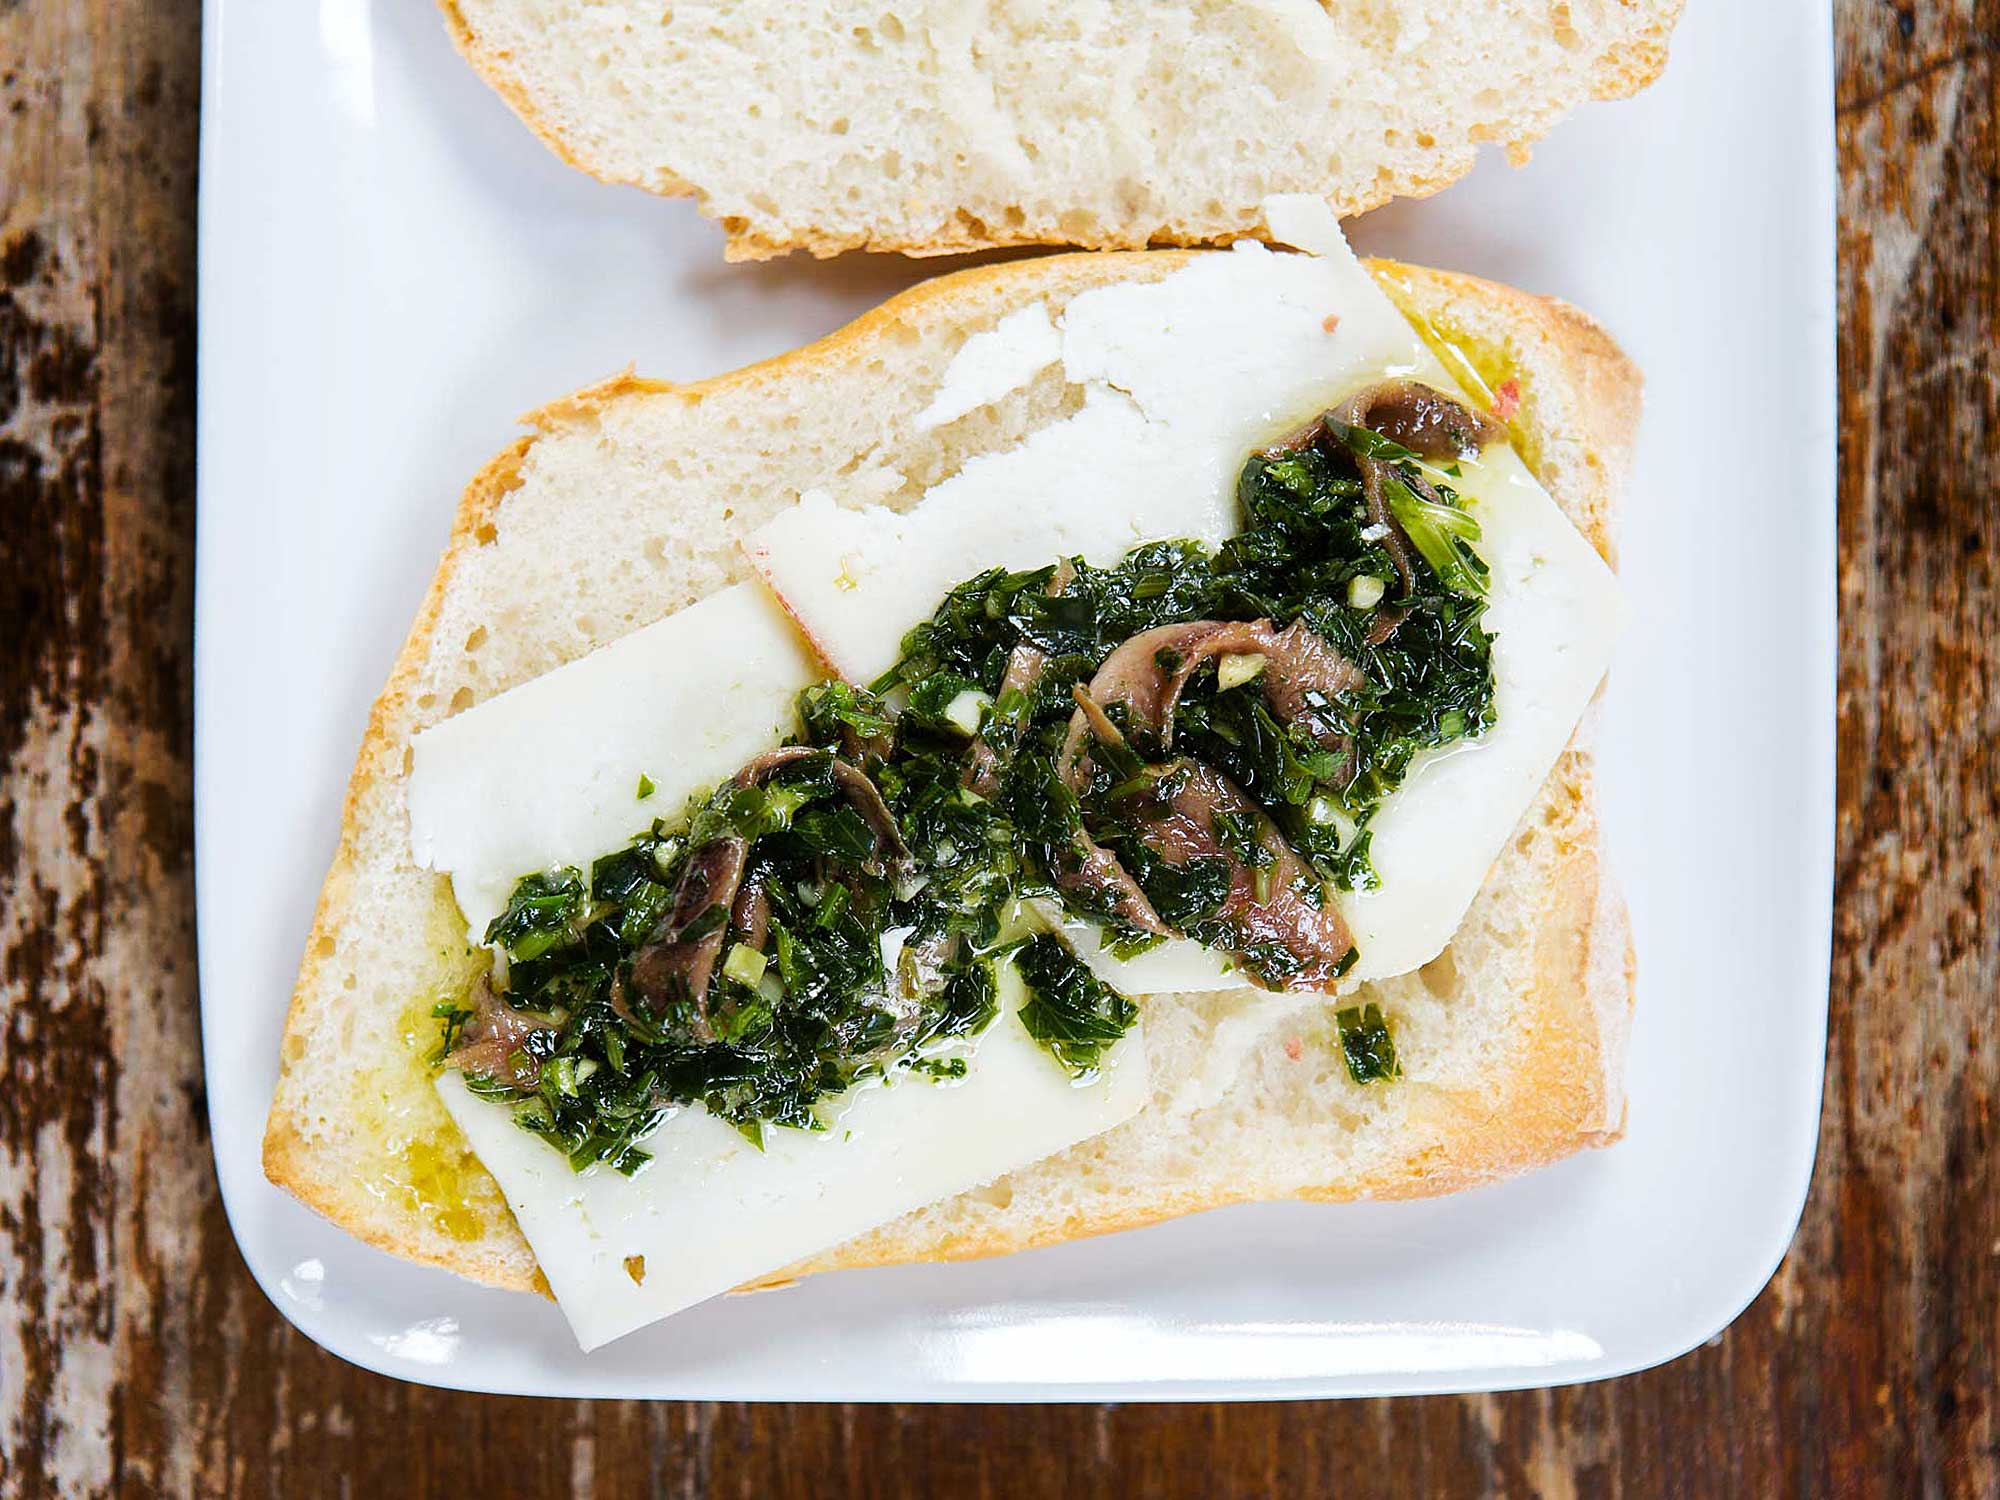 Pecorino, Parsley, and Anchovy Sandwiches